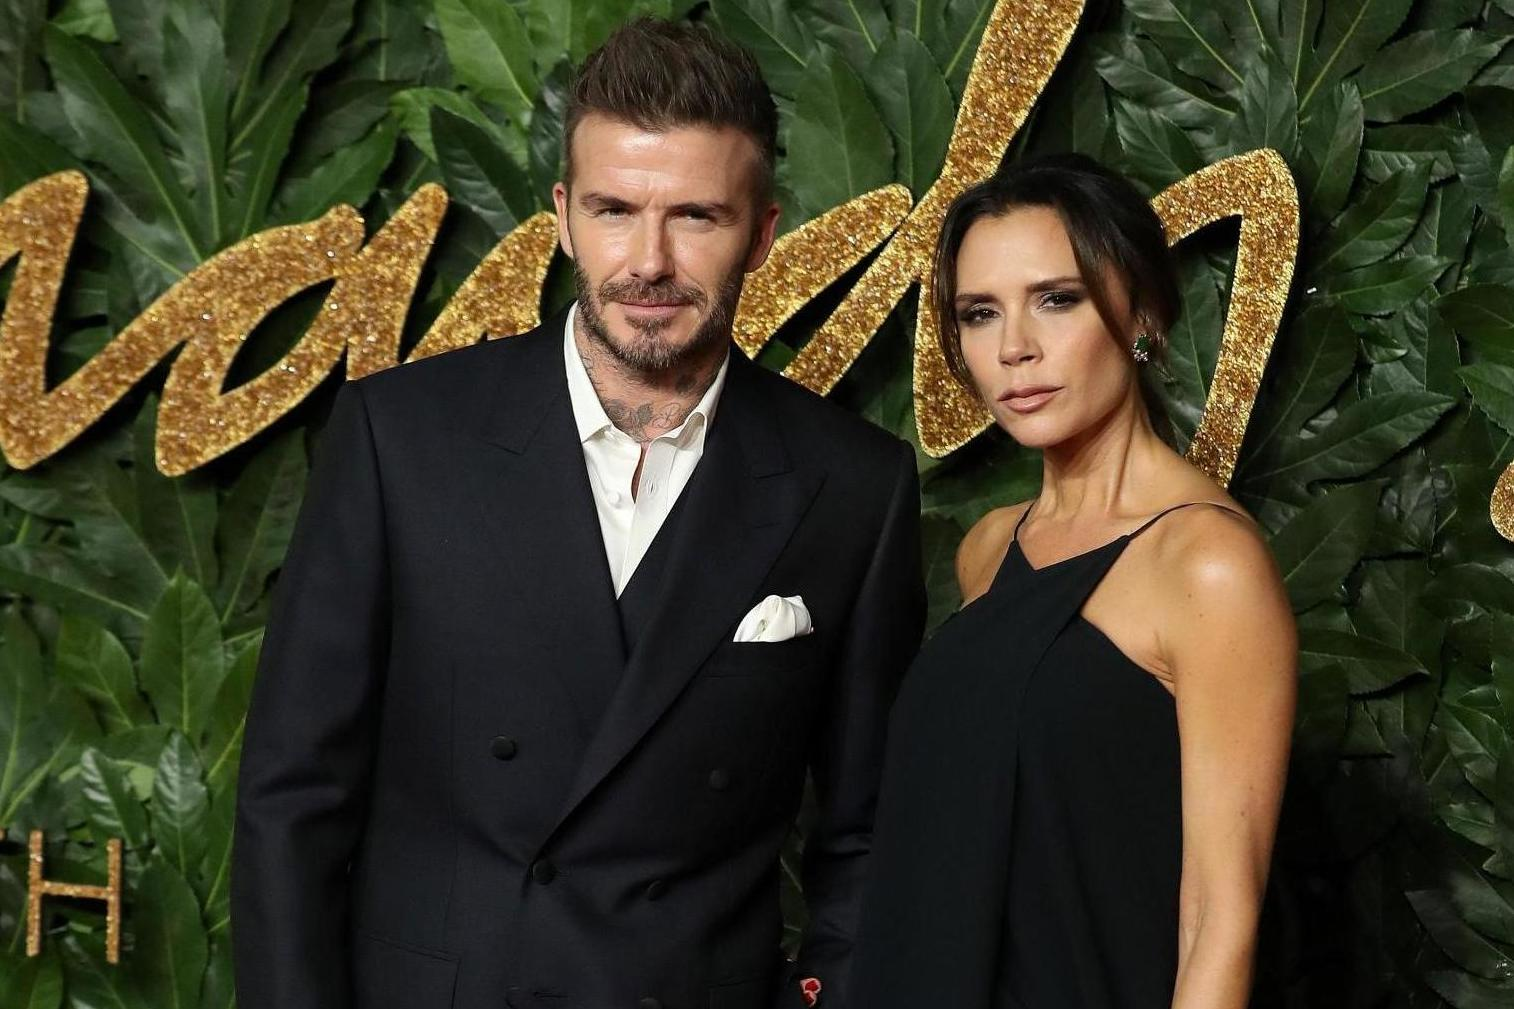 https://www.standard.co.uk/insider/alist/victoria-beckham-on-why-her-20year-marriage-has-lasted-a4262521.html